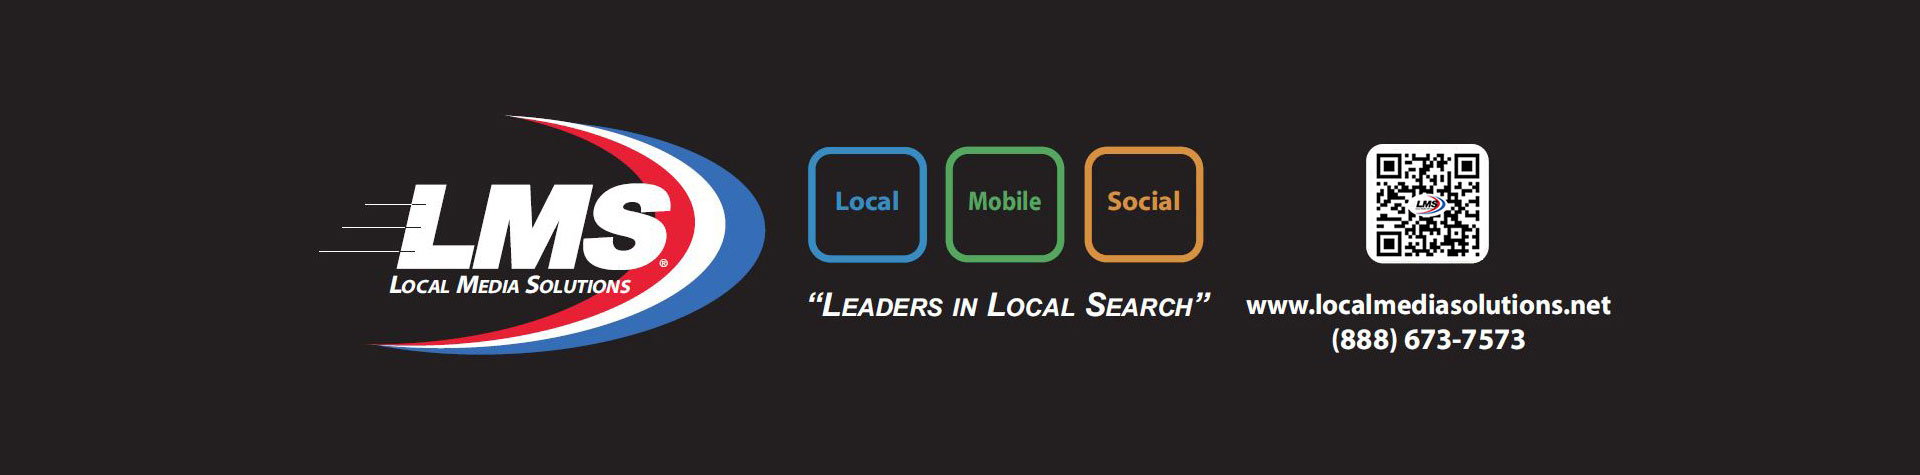 Local Media Solutions SEO Company Banner